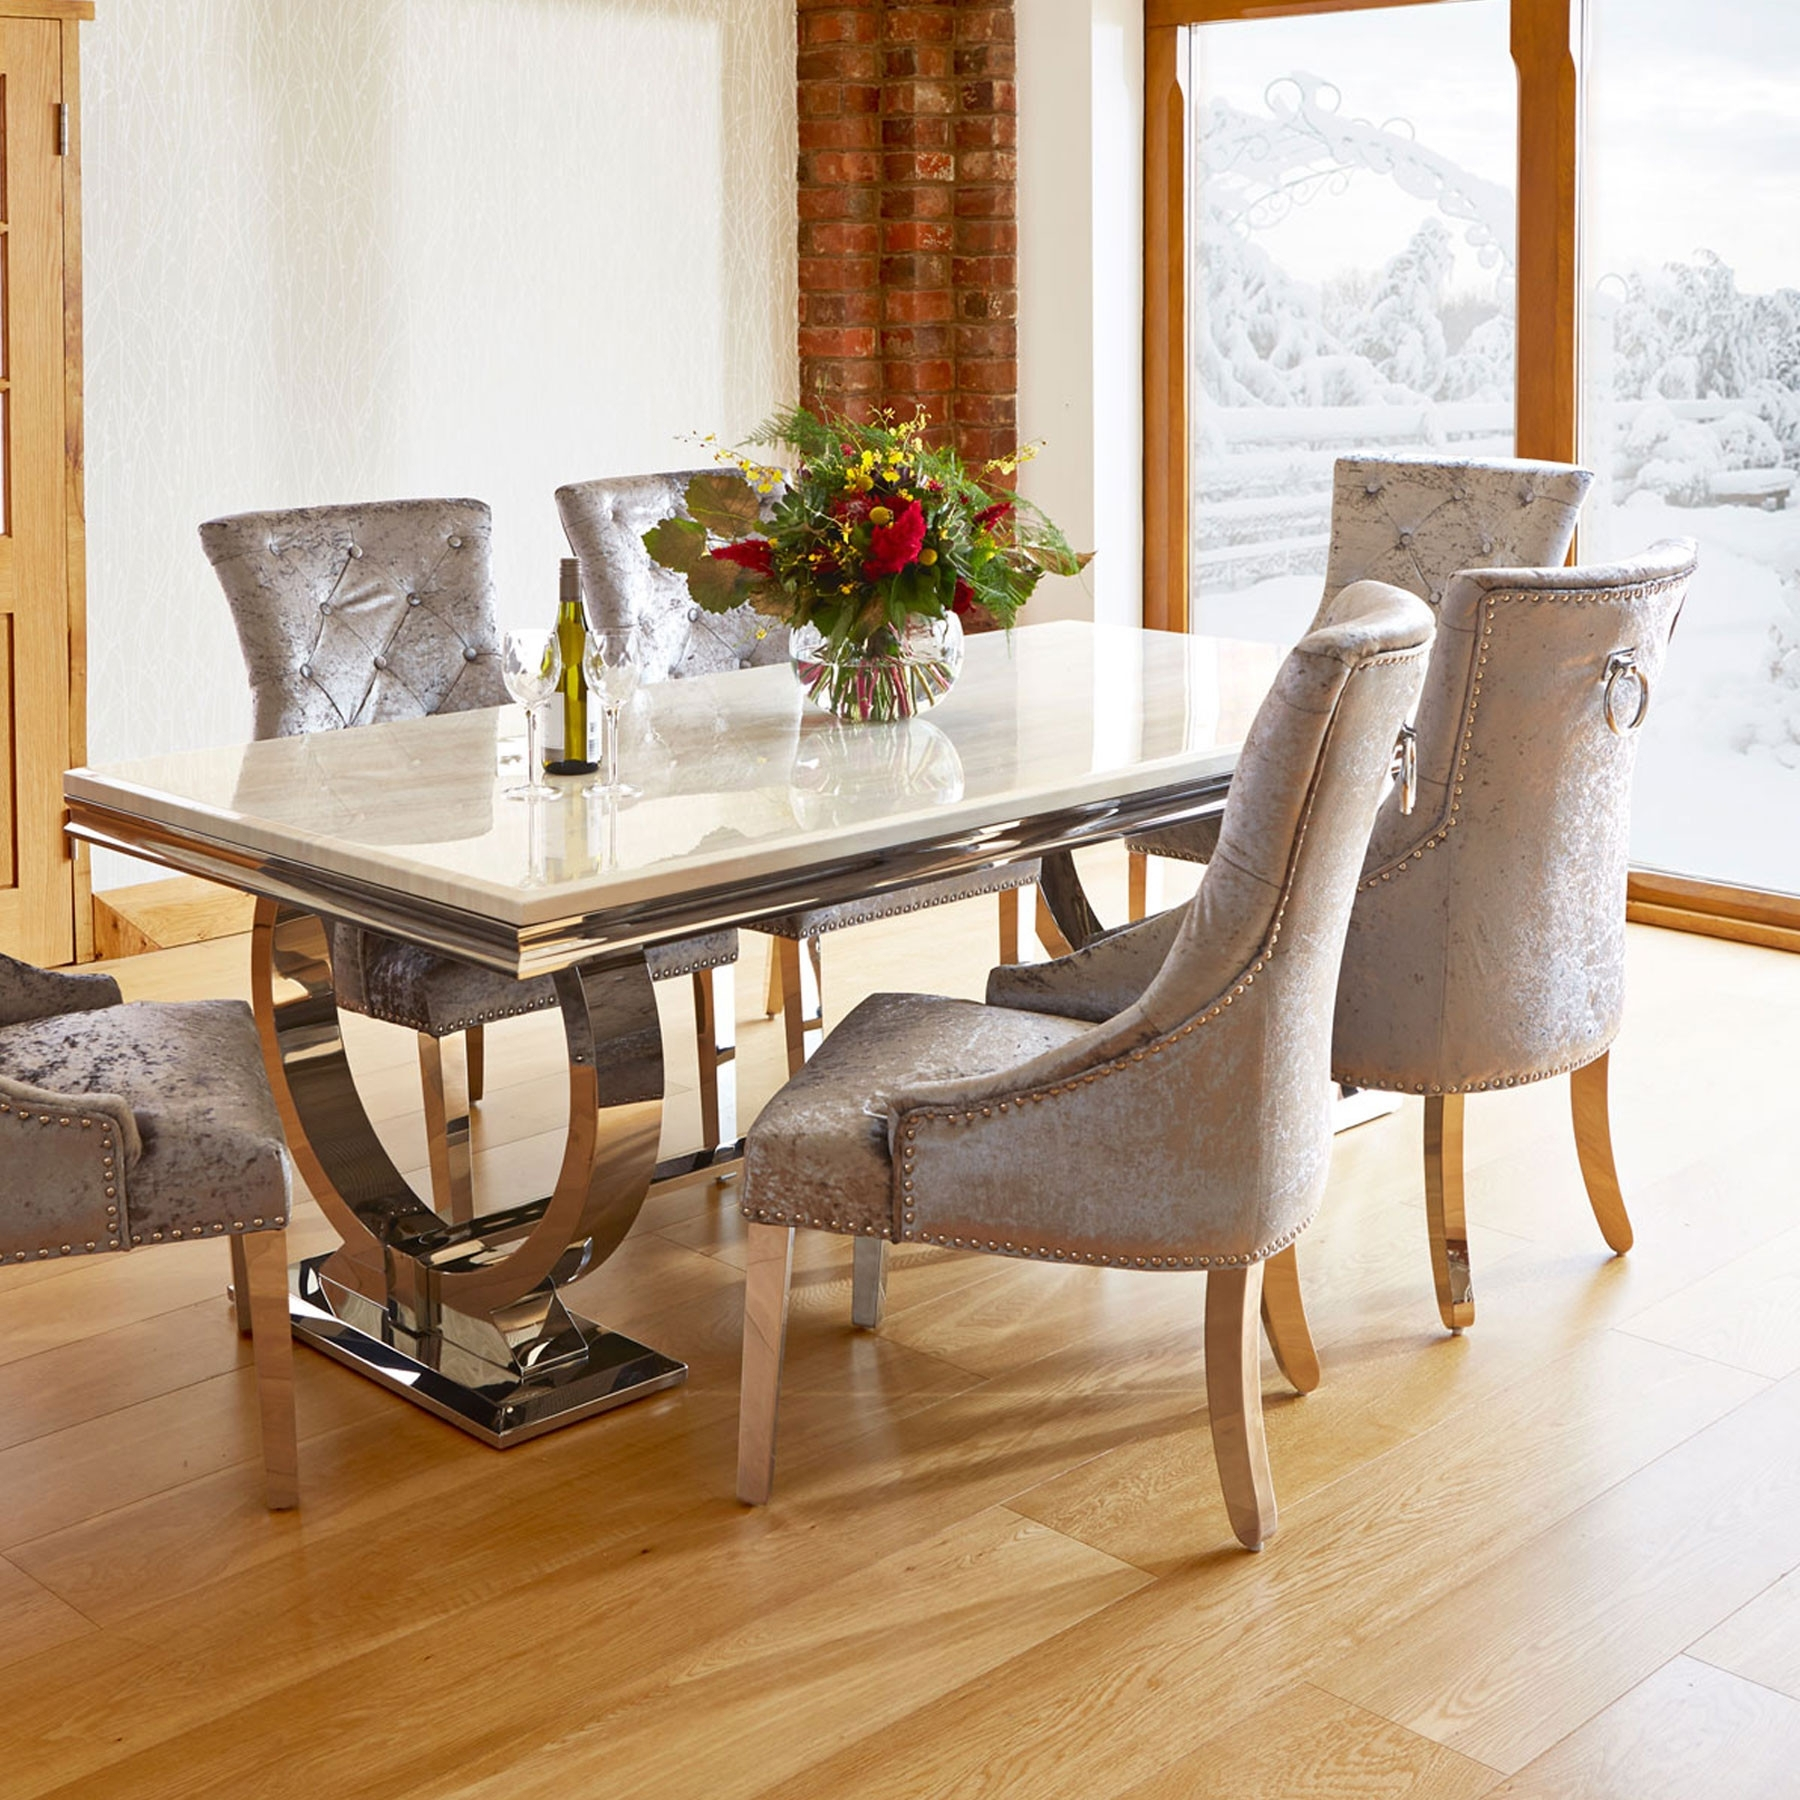 Renata Marble And Chrome Dining Table & 6 Silver Louis Chairs Intended For Most Up To Date Chrome Dining Sets (View 4 of 25)